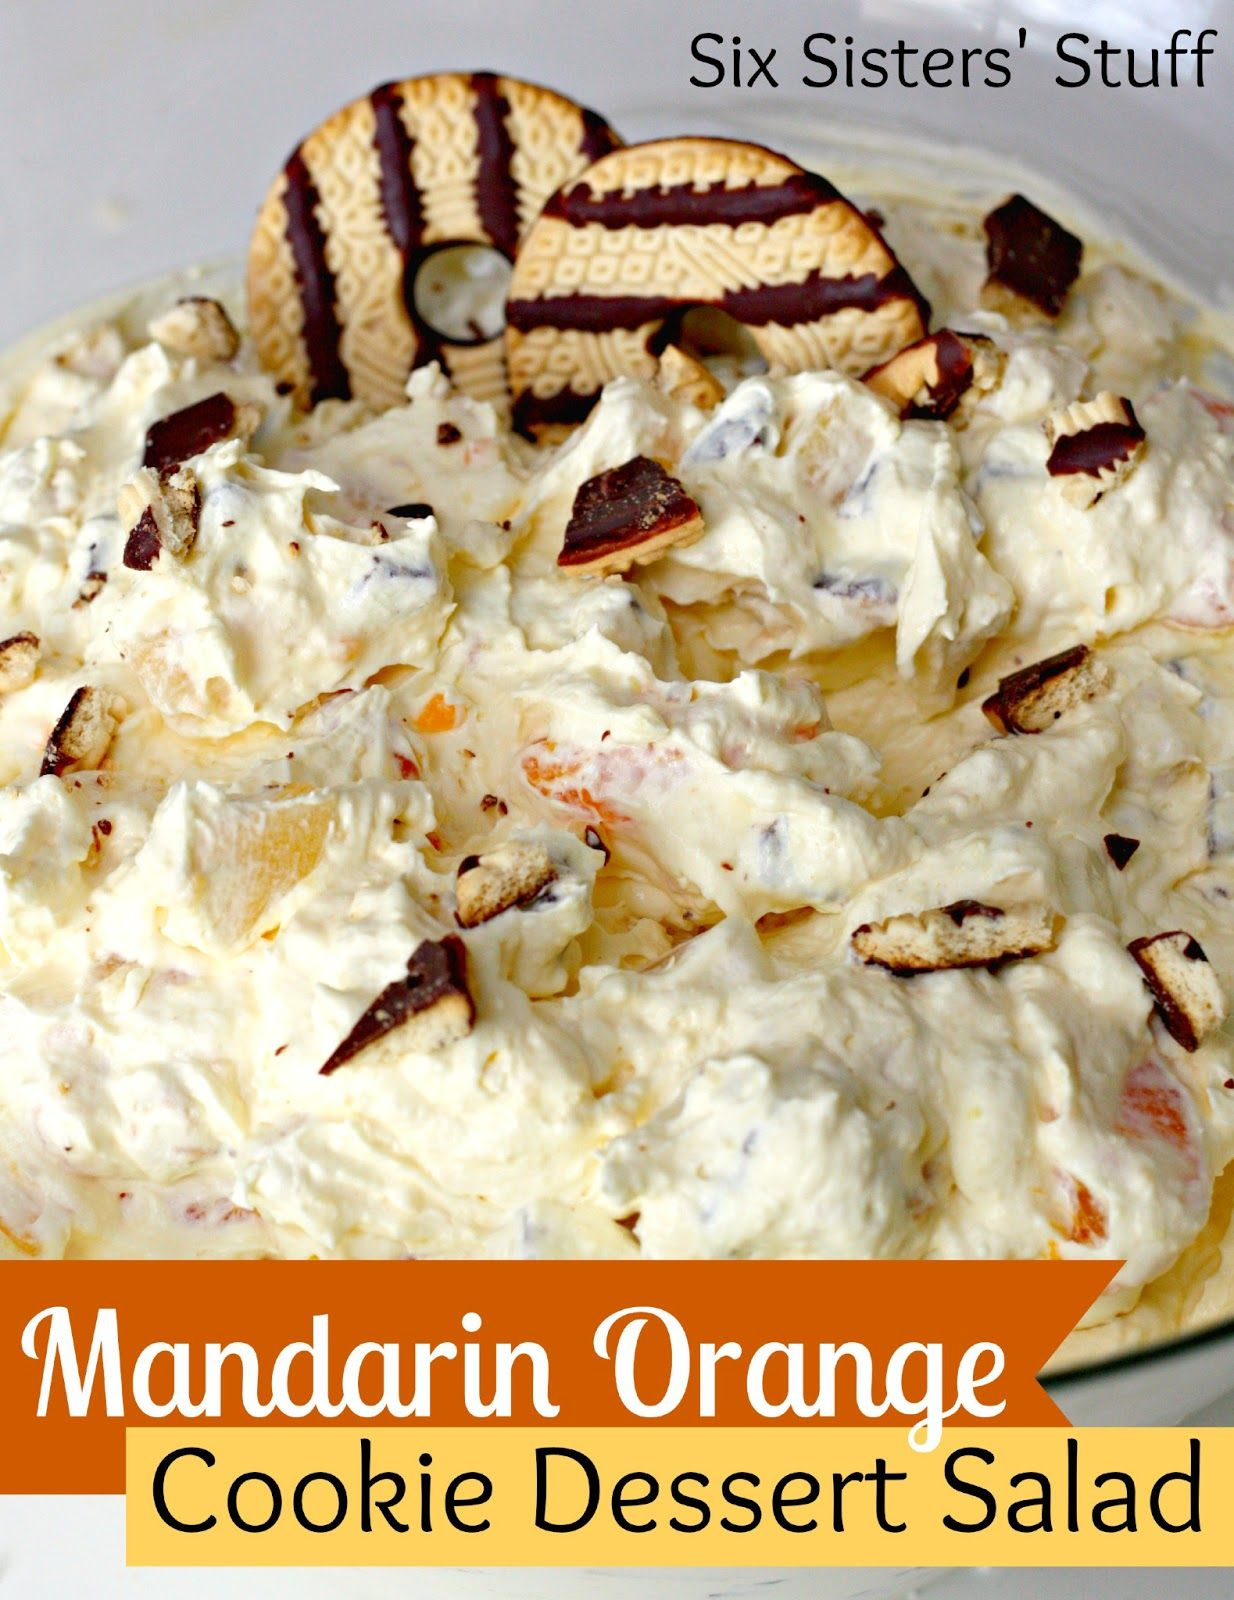 Cookie Nachtisch Mandarin Orange Cookie Dessert Salad